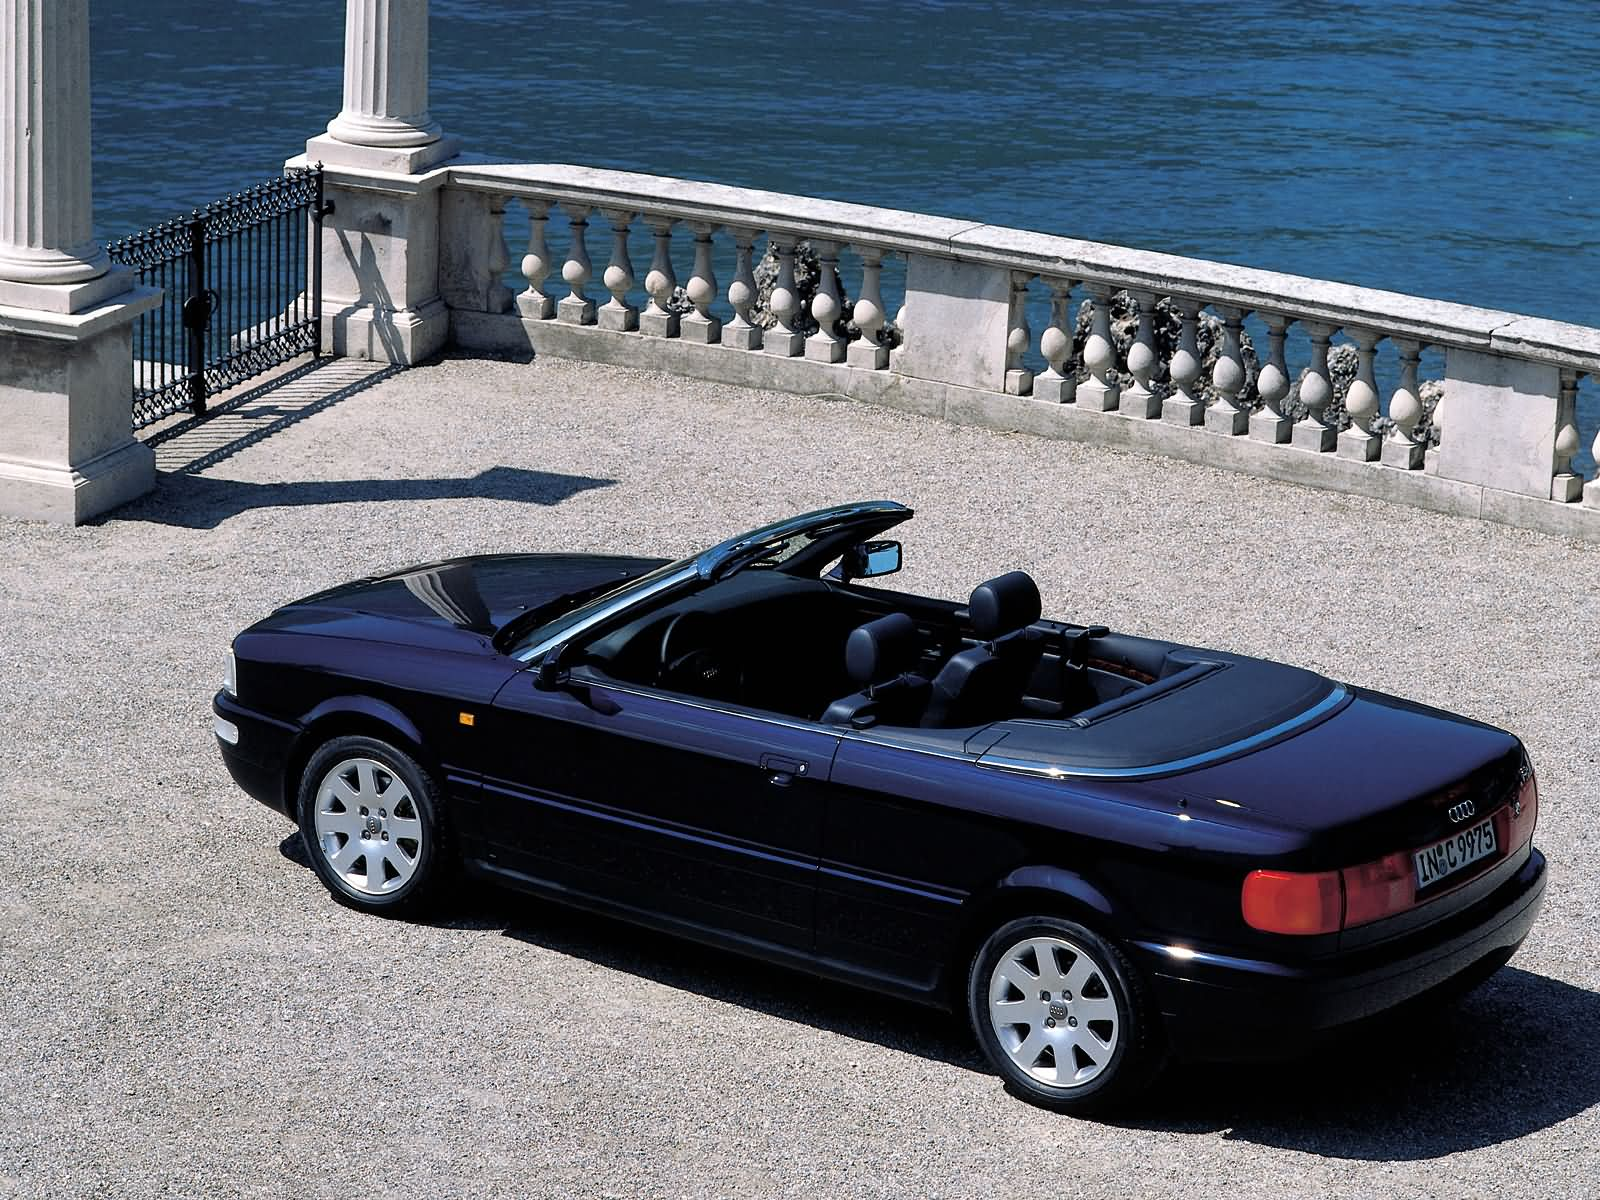 Audi A4 Cabrio 1998 Audi A4 Cabrio 1998 Photo 14 Car In